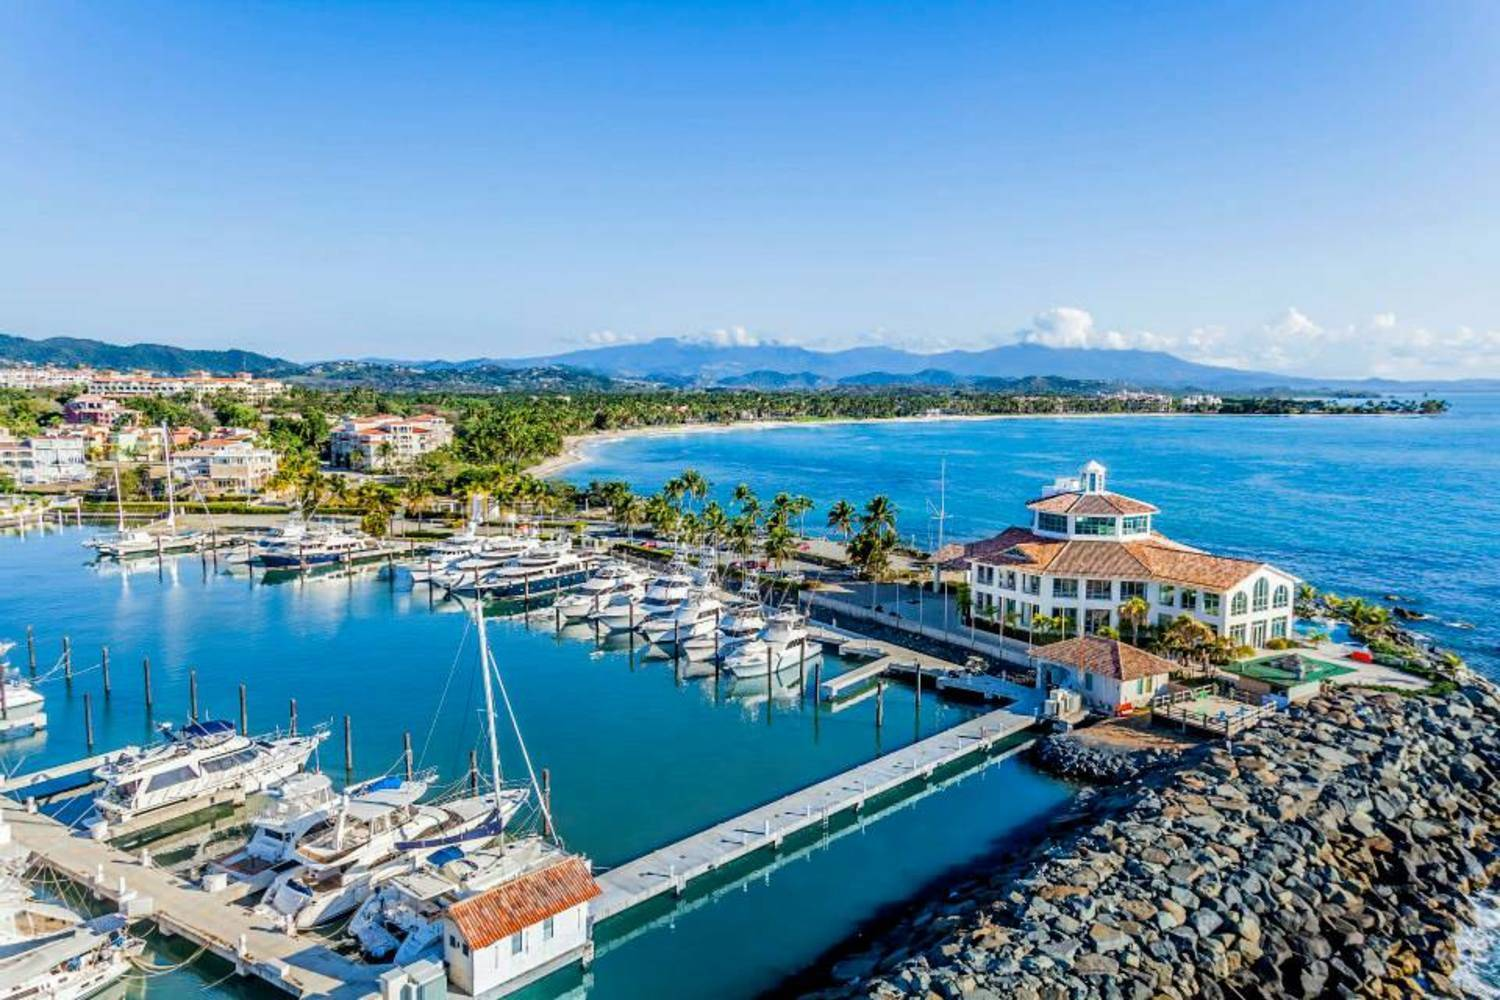 The Yacht Club Marina At Palmas Del Mar Slip Dock